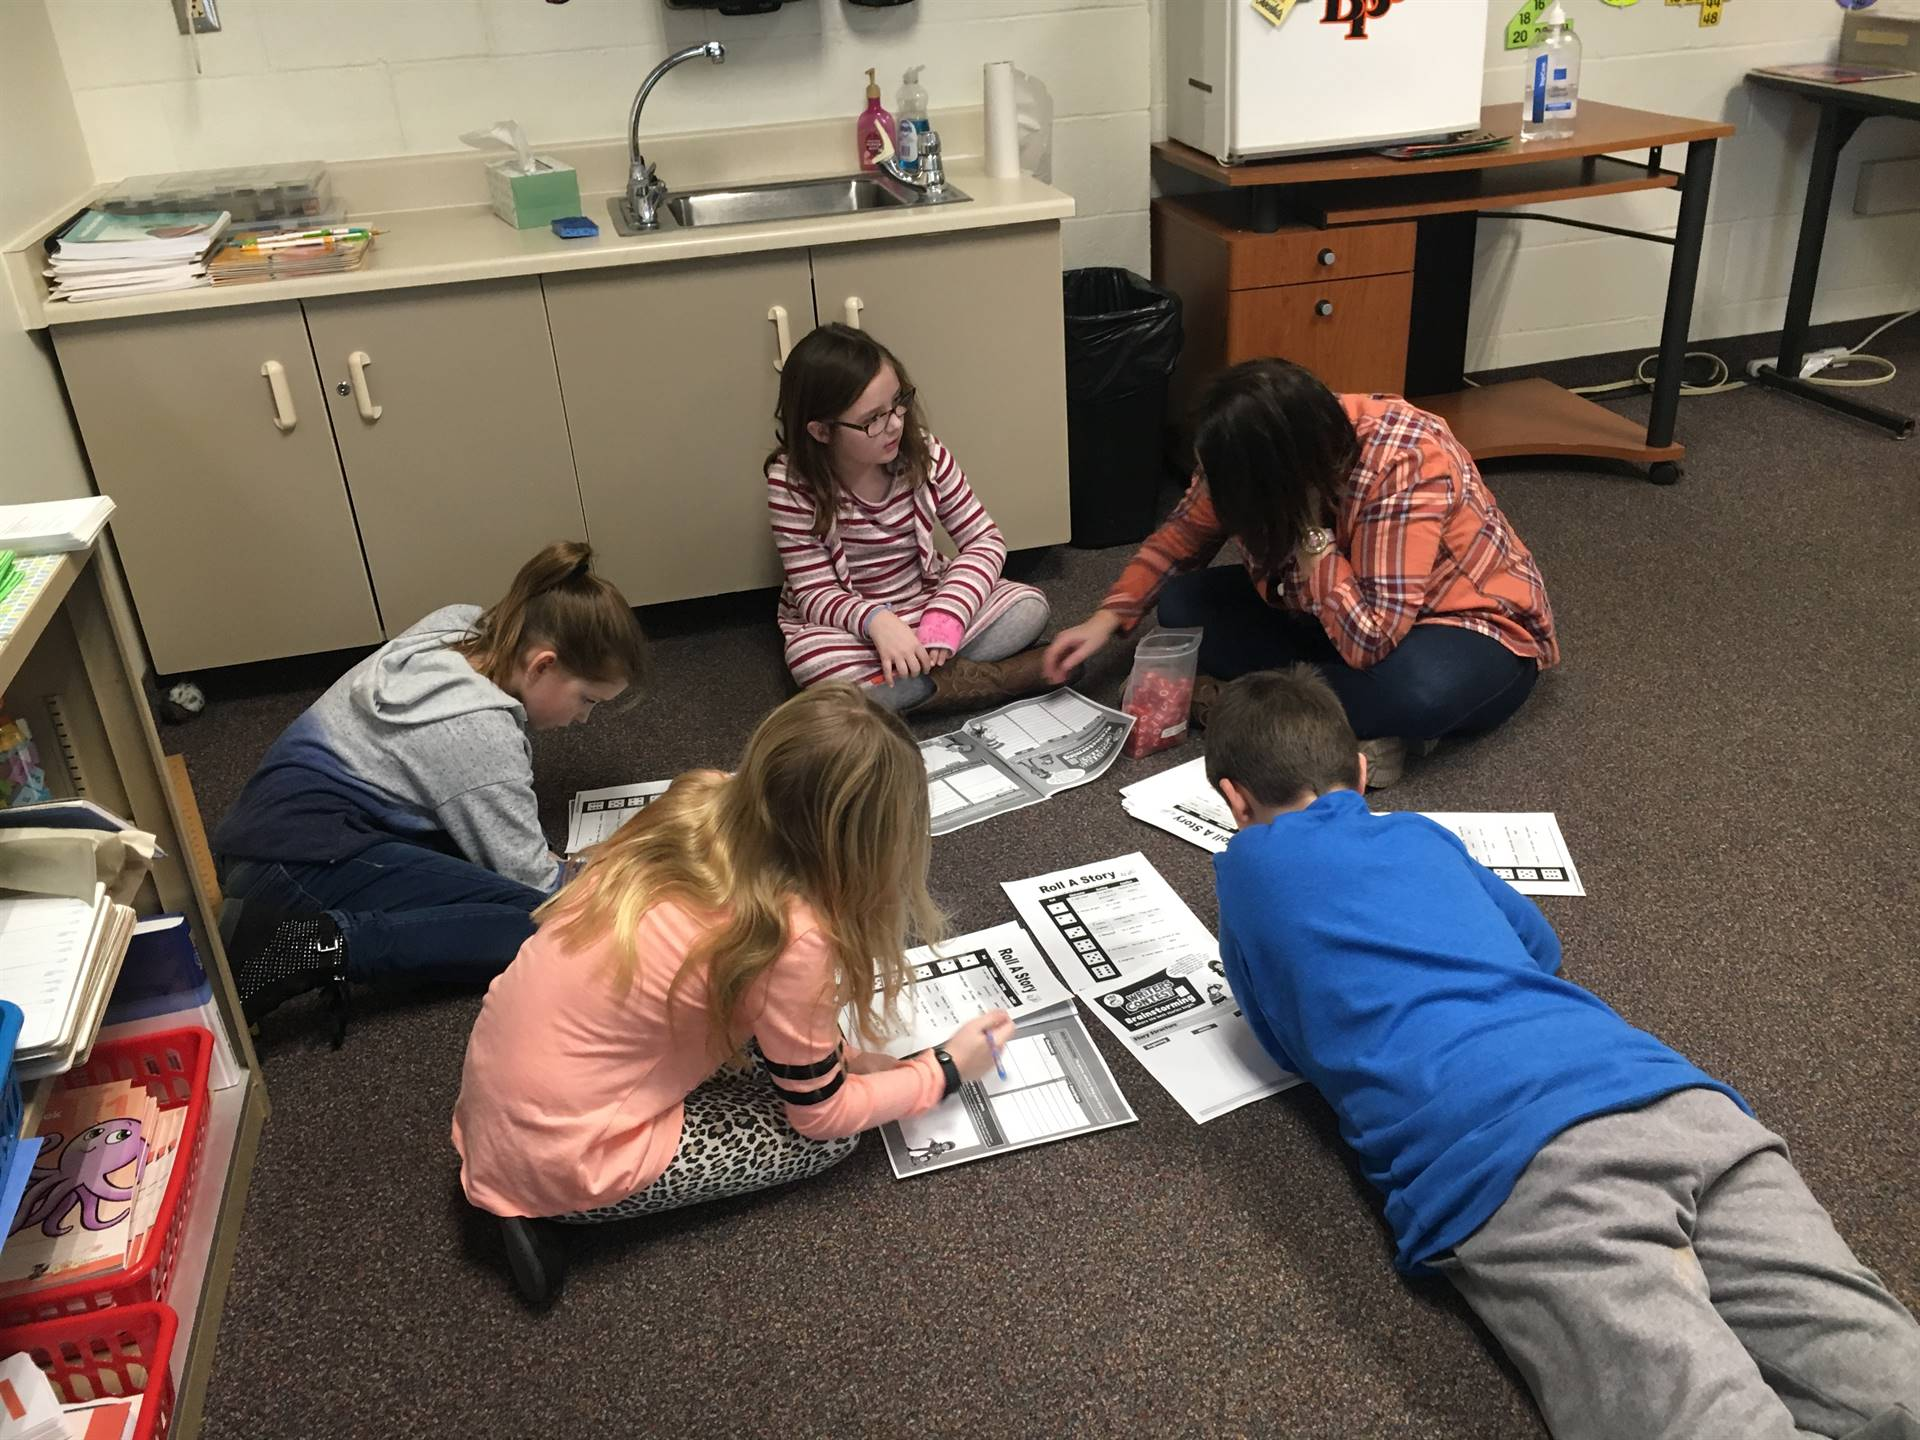 Five students working in a circle on the floor